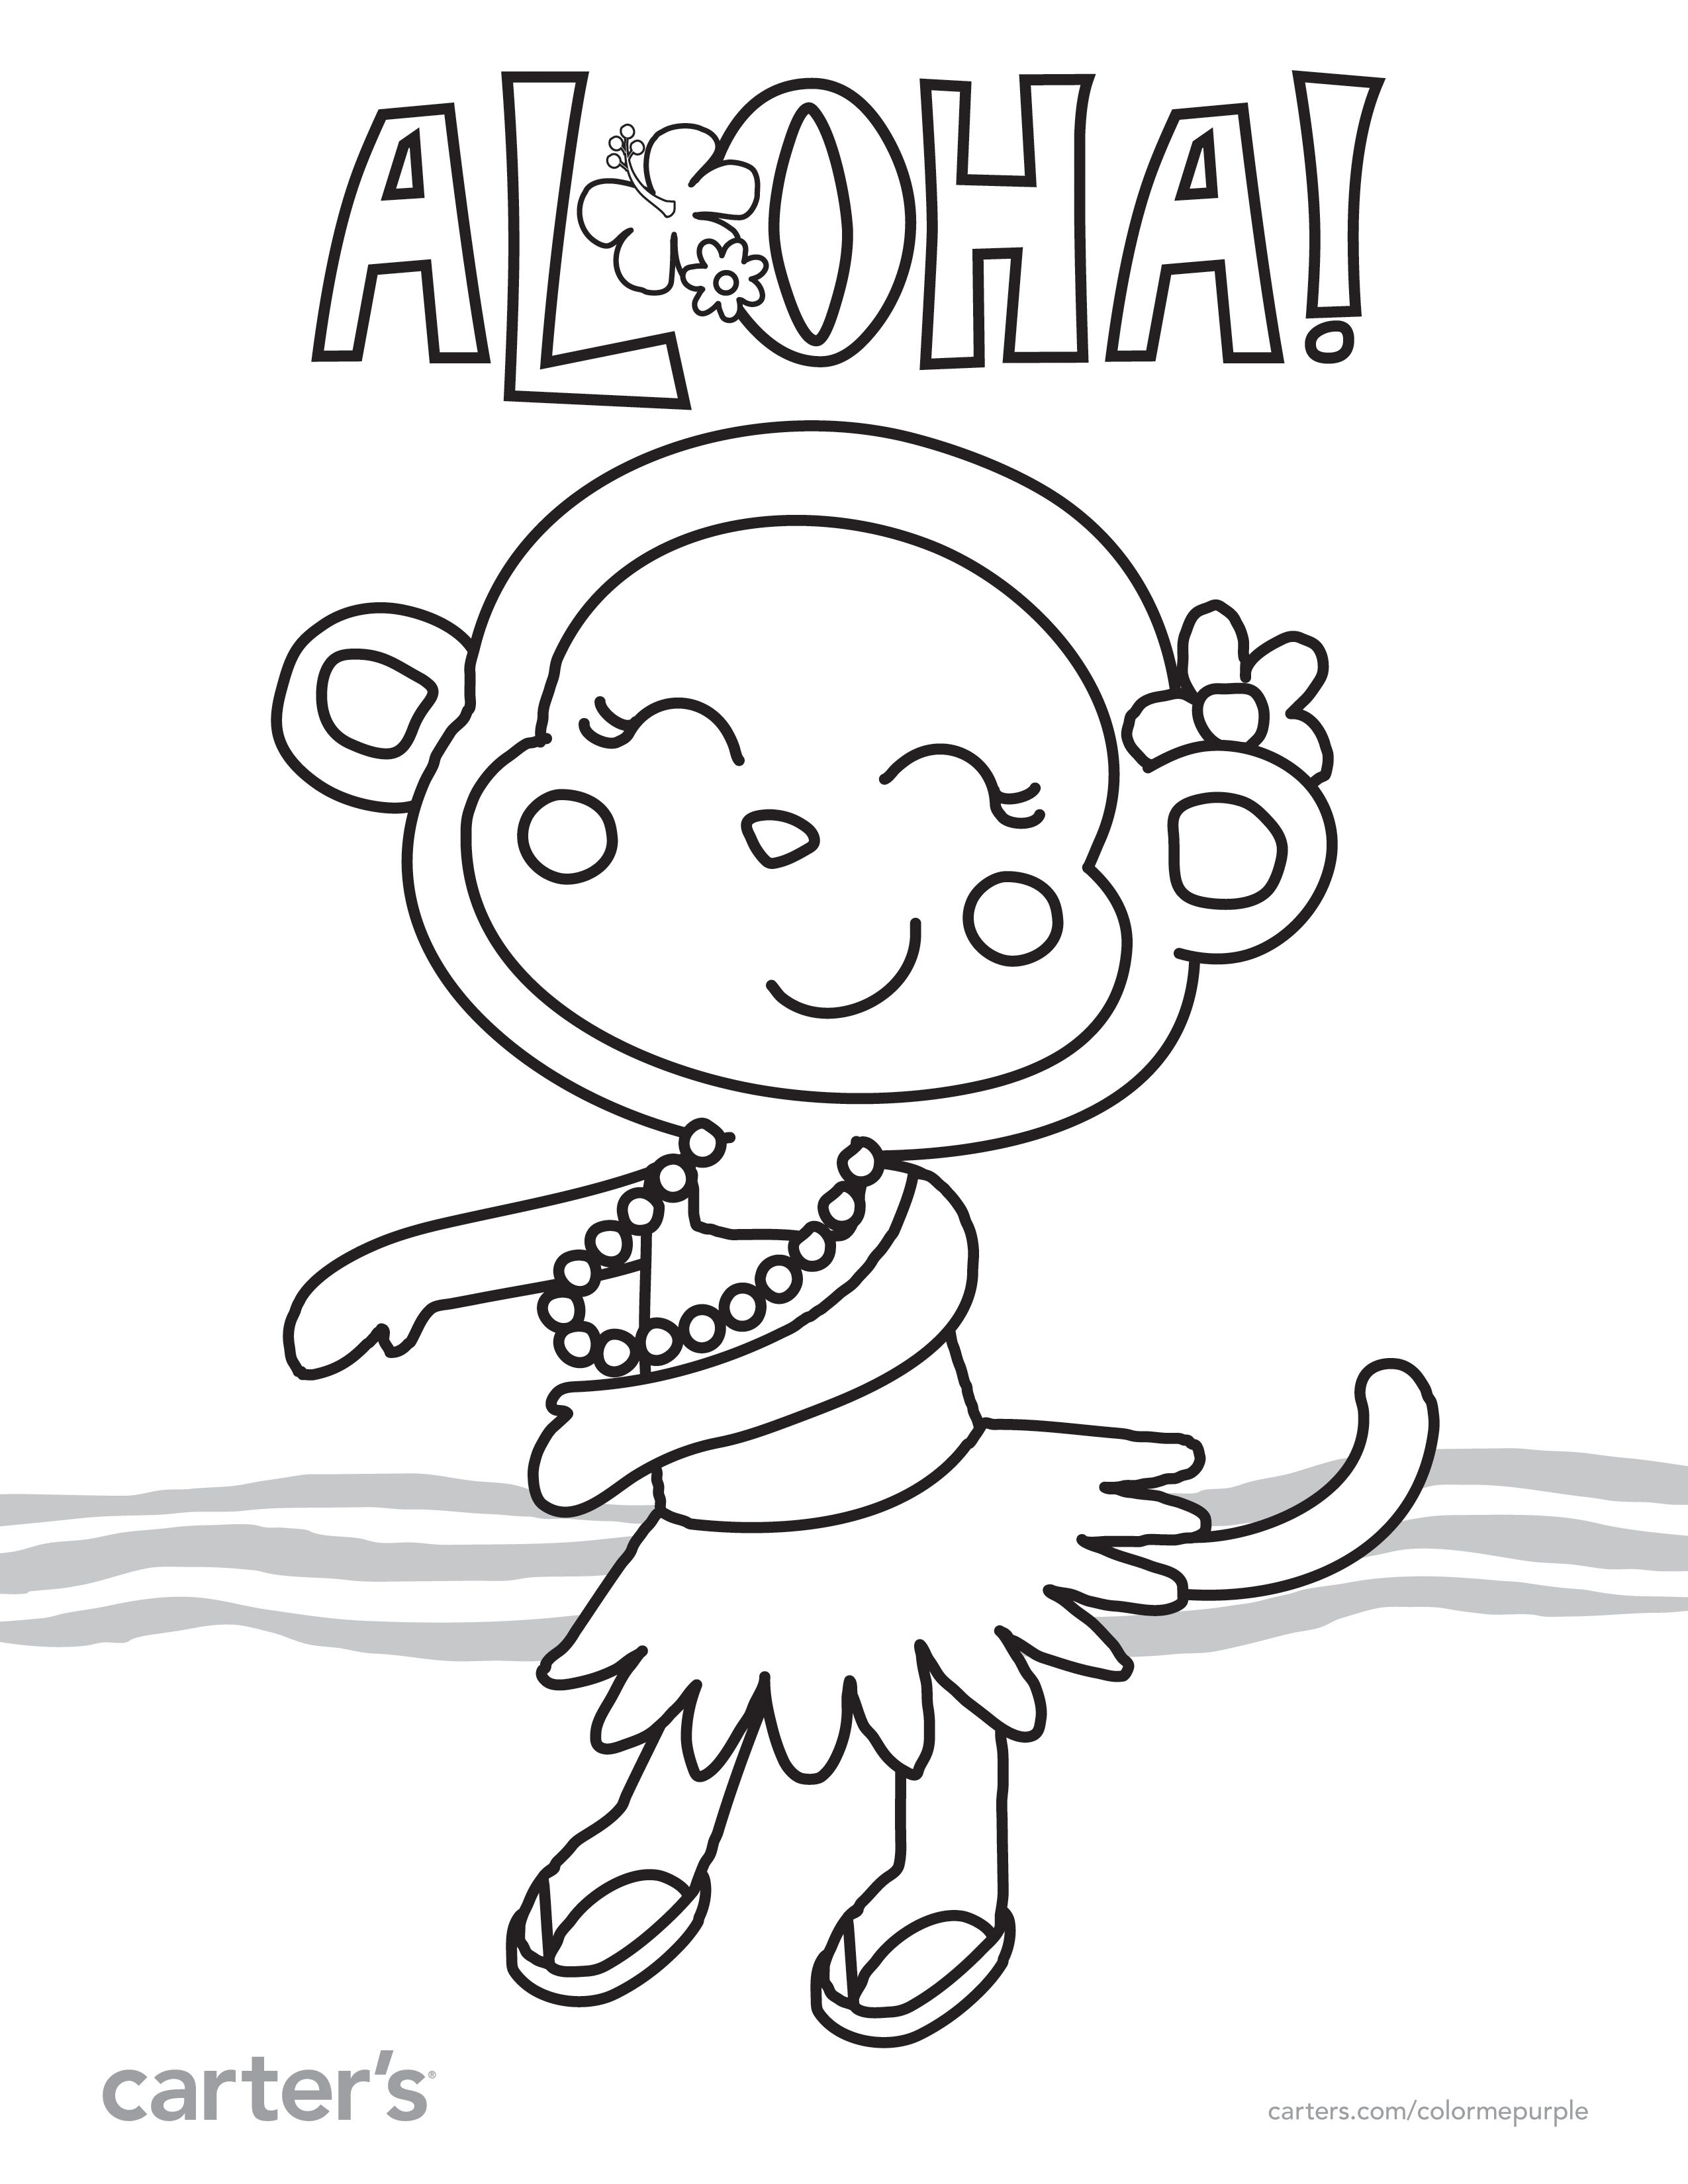 Aloha Take This And Other Color Sheets On Vacation With You To Keep Your Little Ones